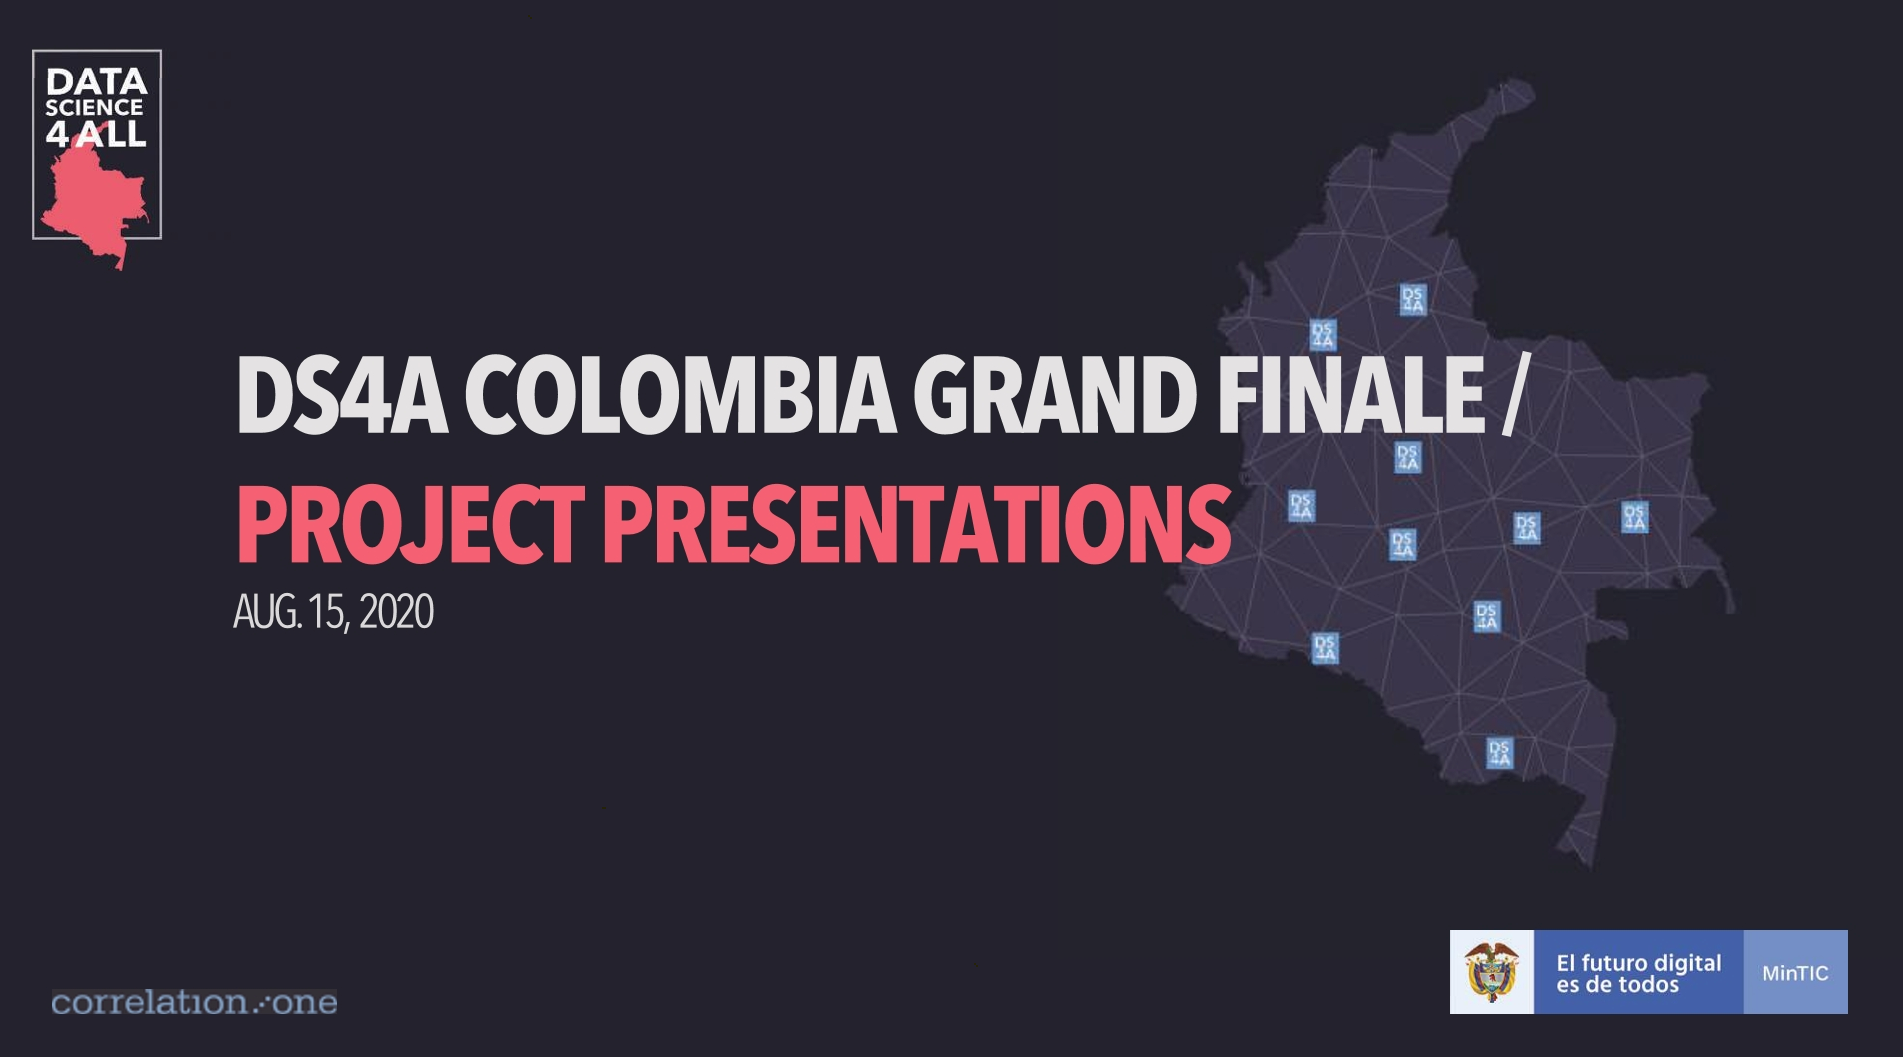 Data Science for All: Colombia Graduates 500+ new data professionals